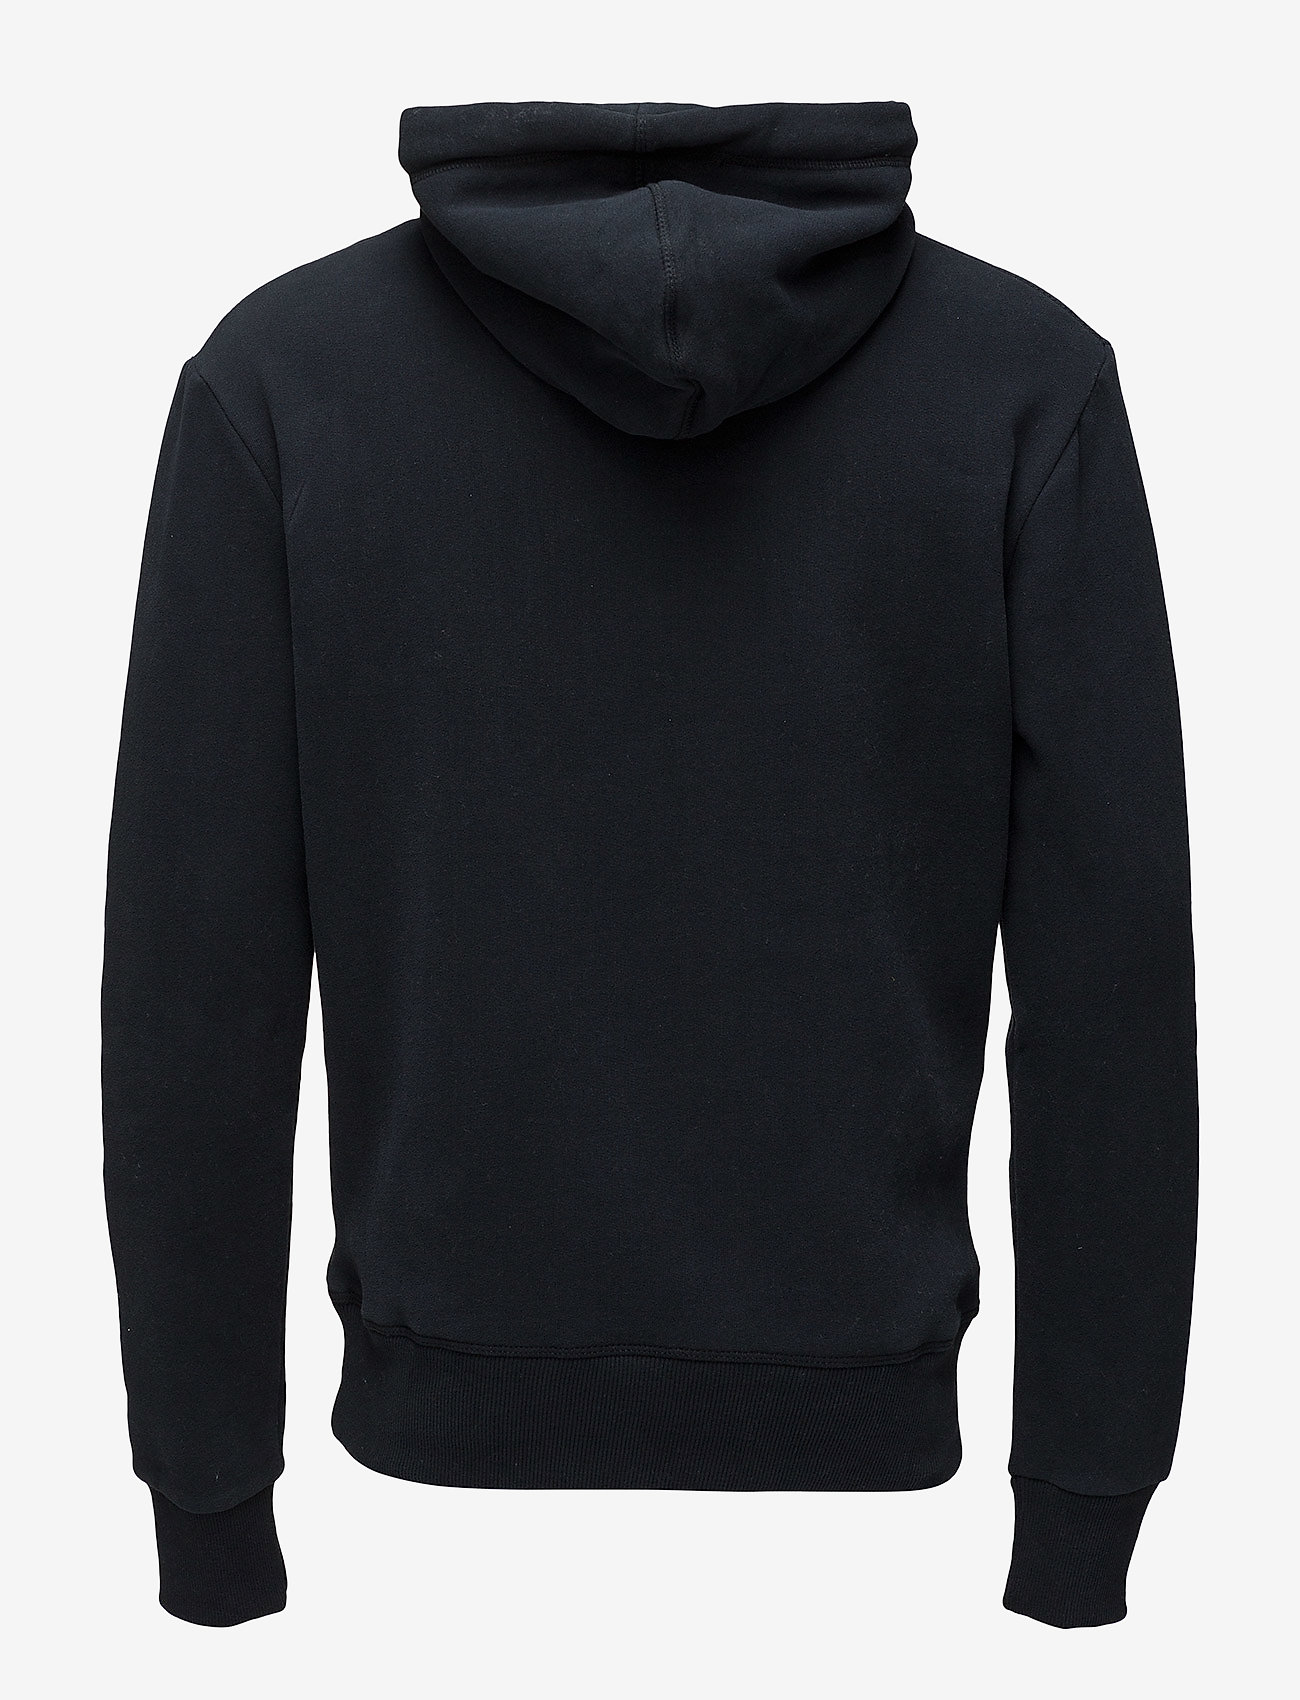 Superdry SWEAT SHIRT SHOP DUO HOOD - Sweatshirts ECLIPSE NAVY - Menn Klær